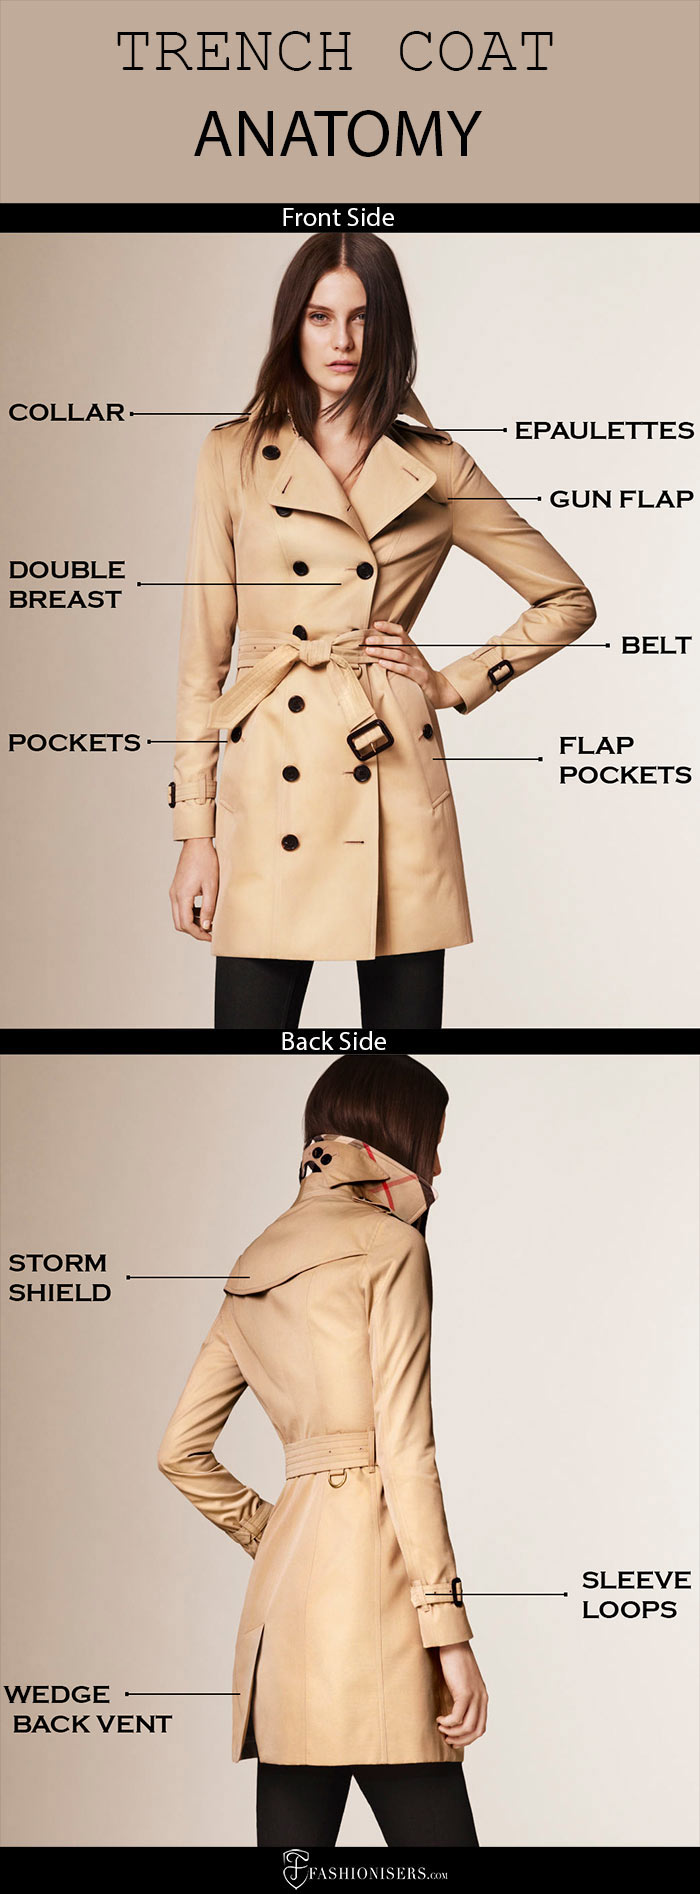 b52ccb296357 The Anatomy of a Trench Coat: How To Wear It | Fashionisers©